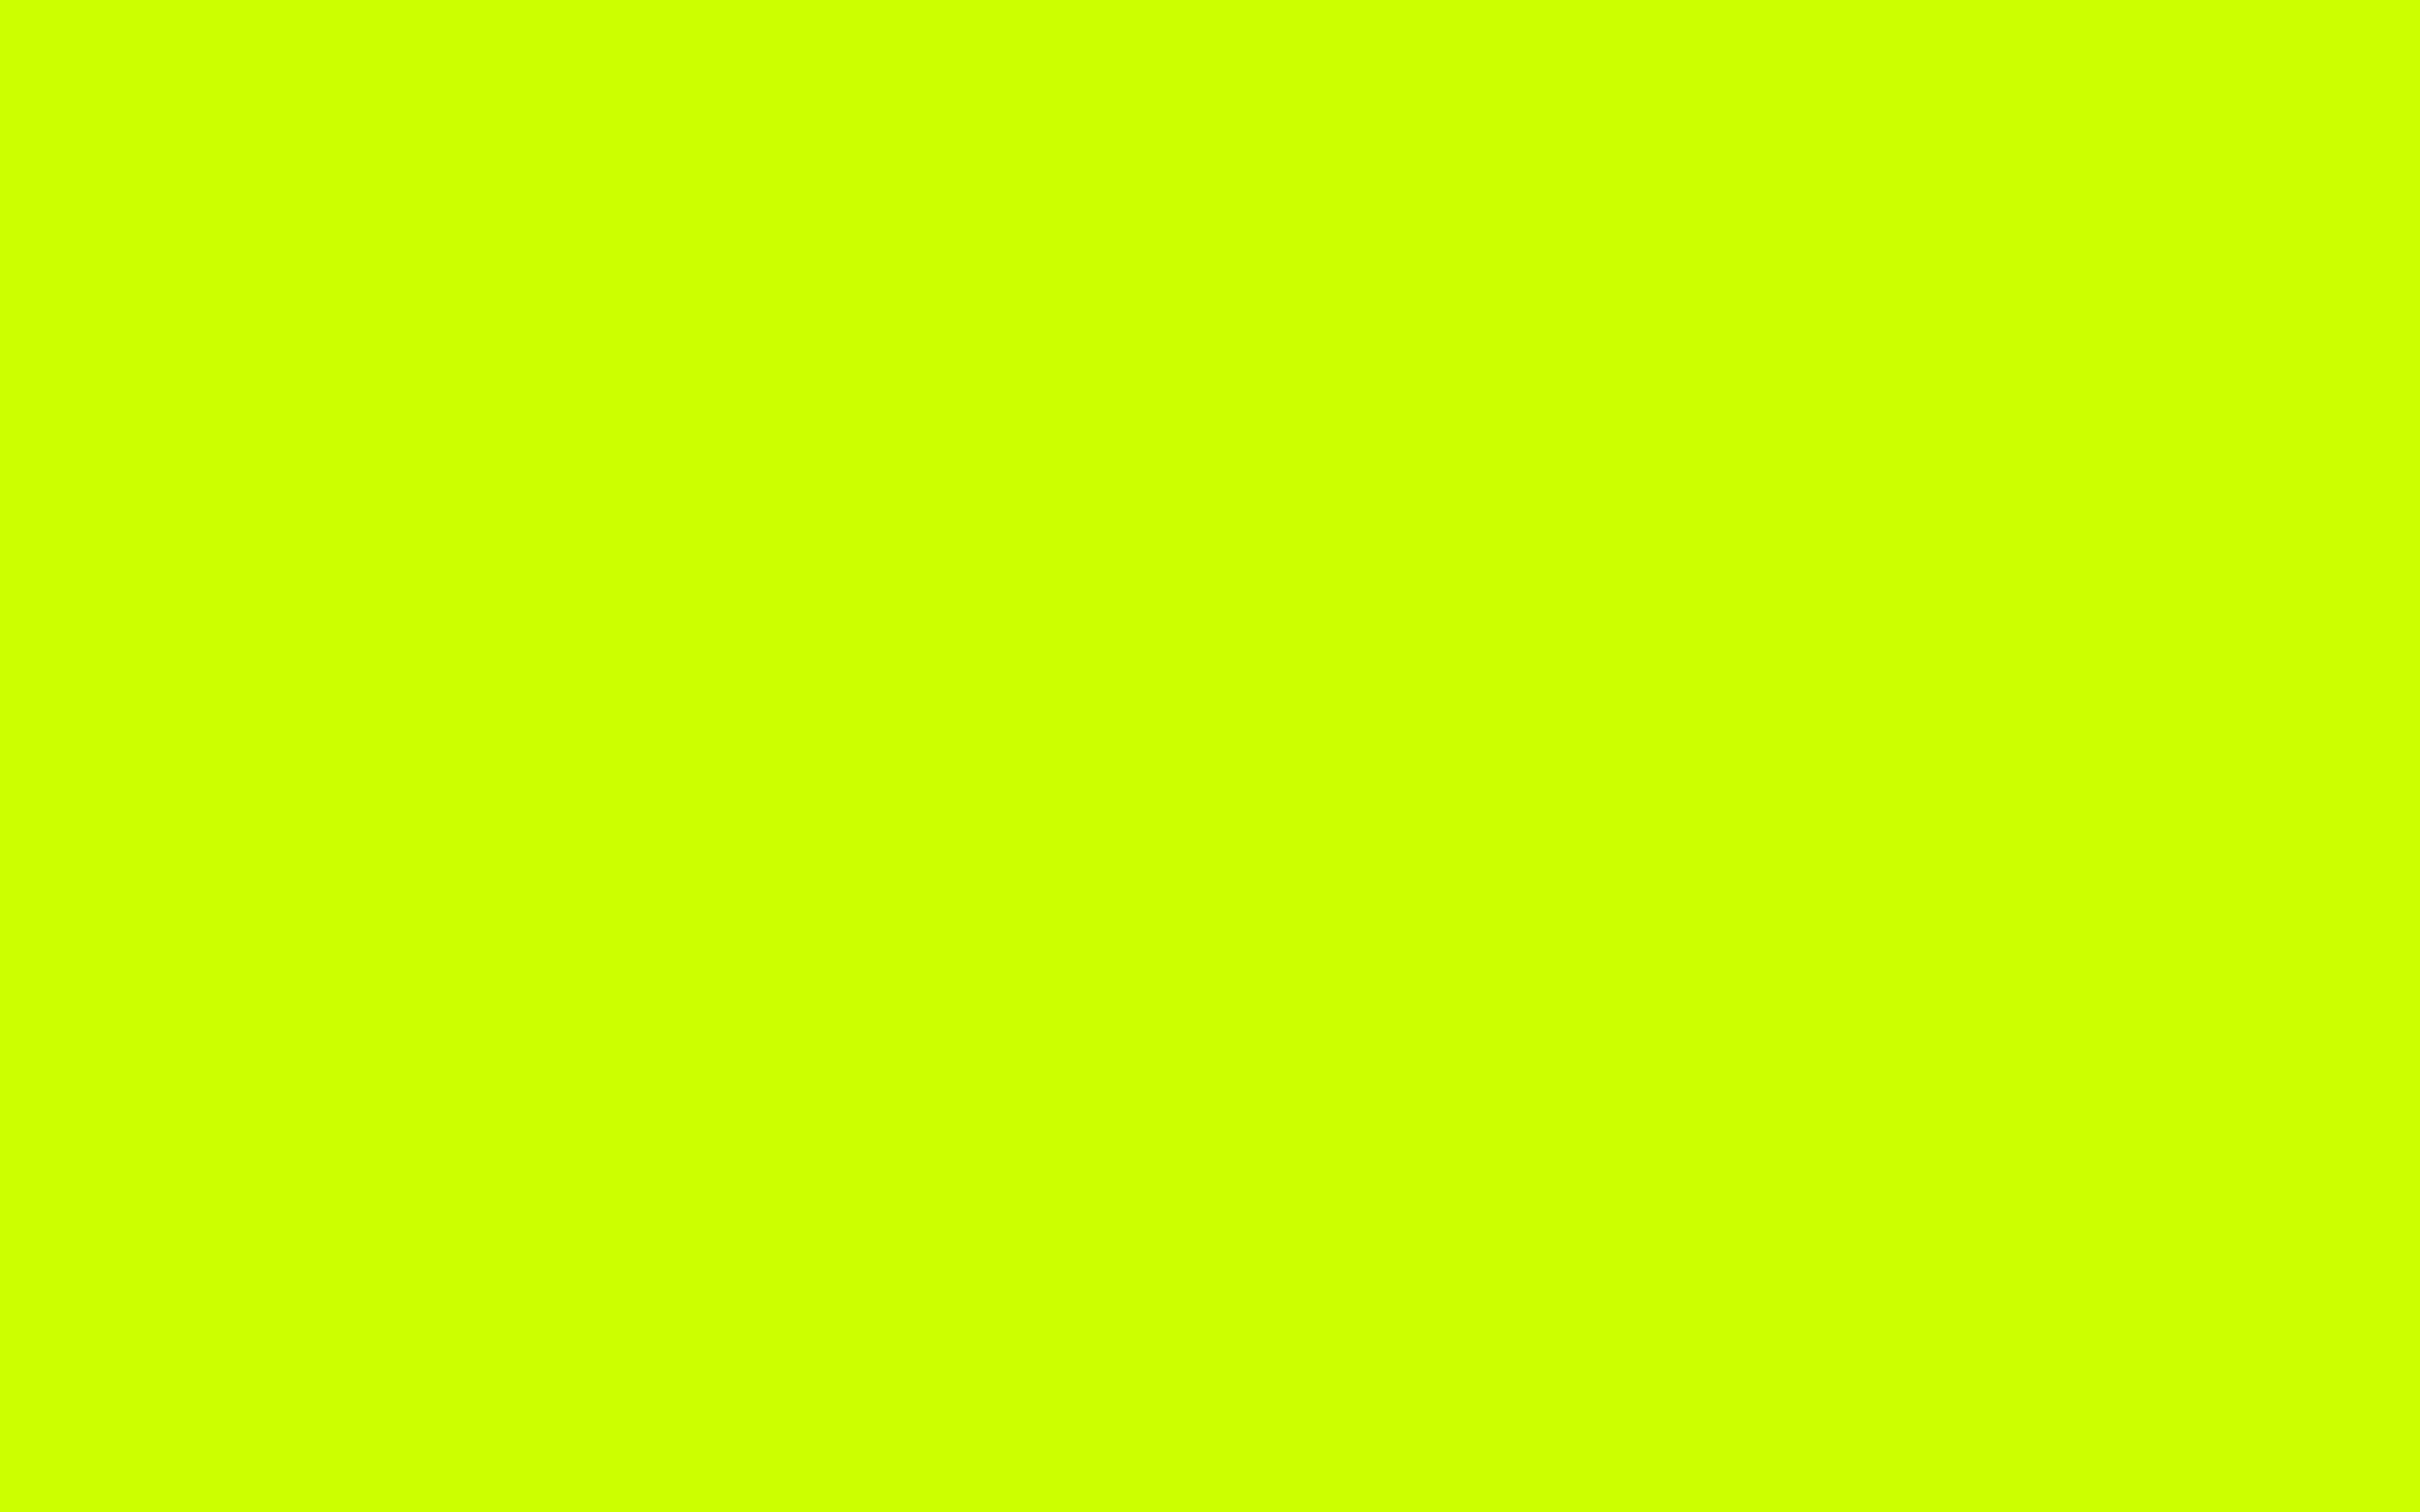 2560x1600 Electric Lime Solid Color Background